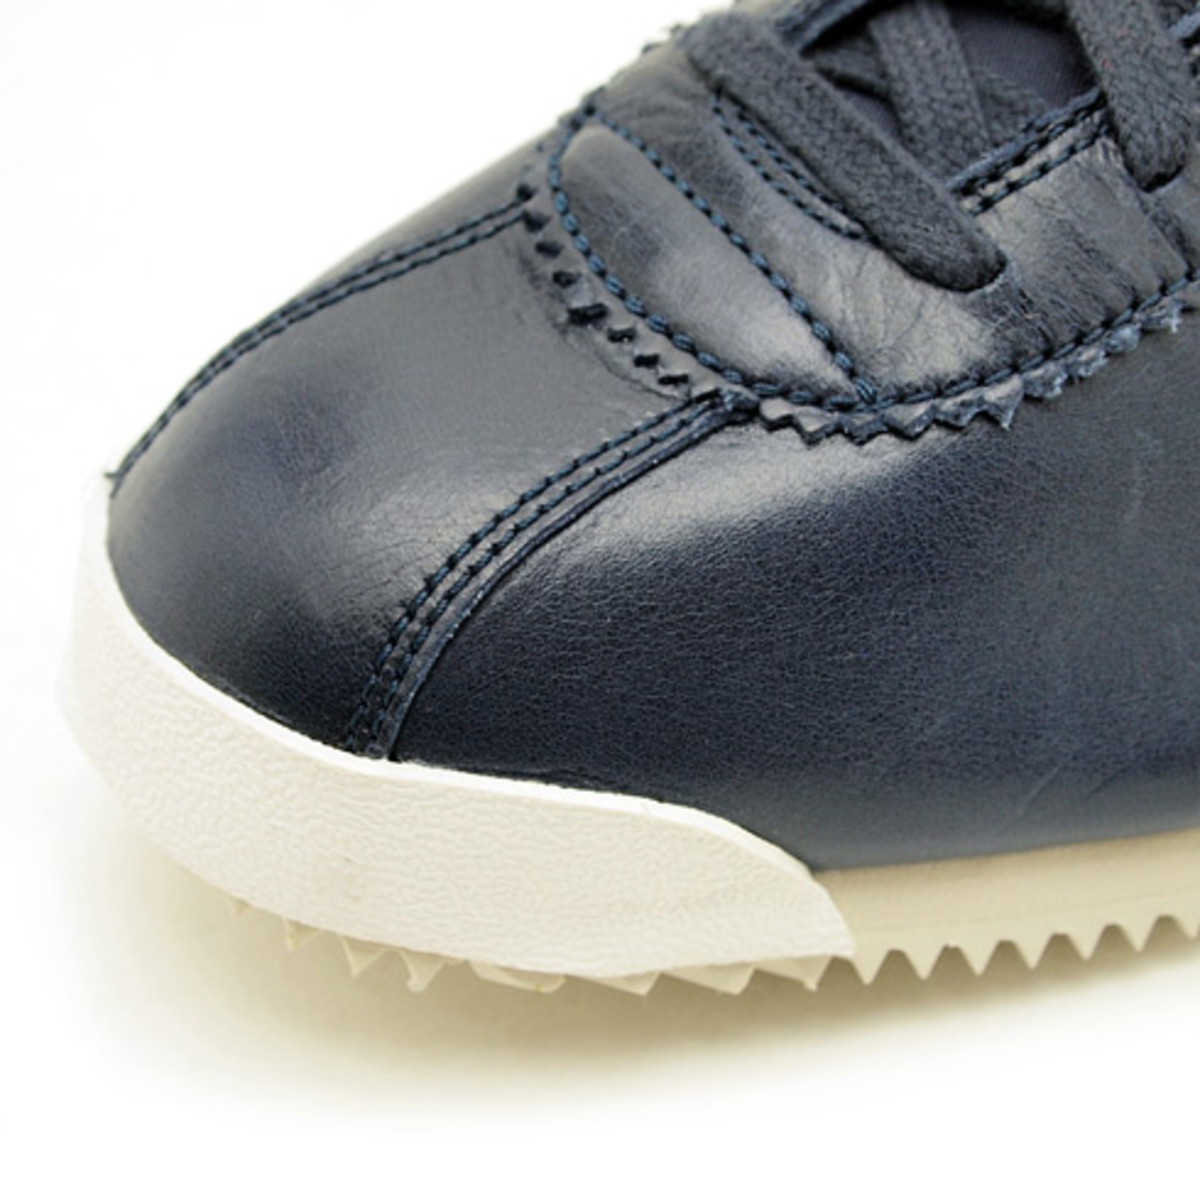 nike-cortez-classic-og-leather-04